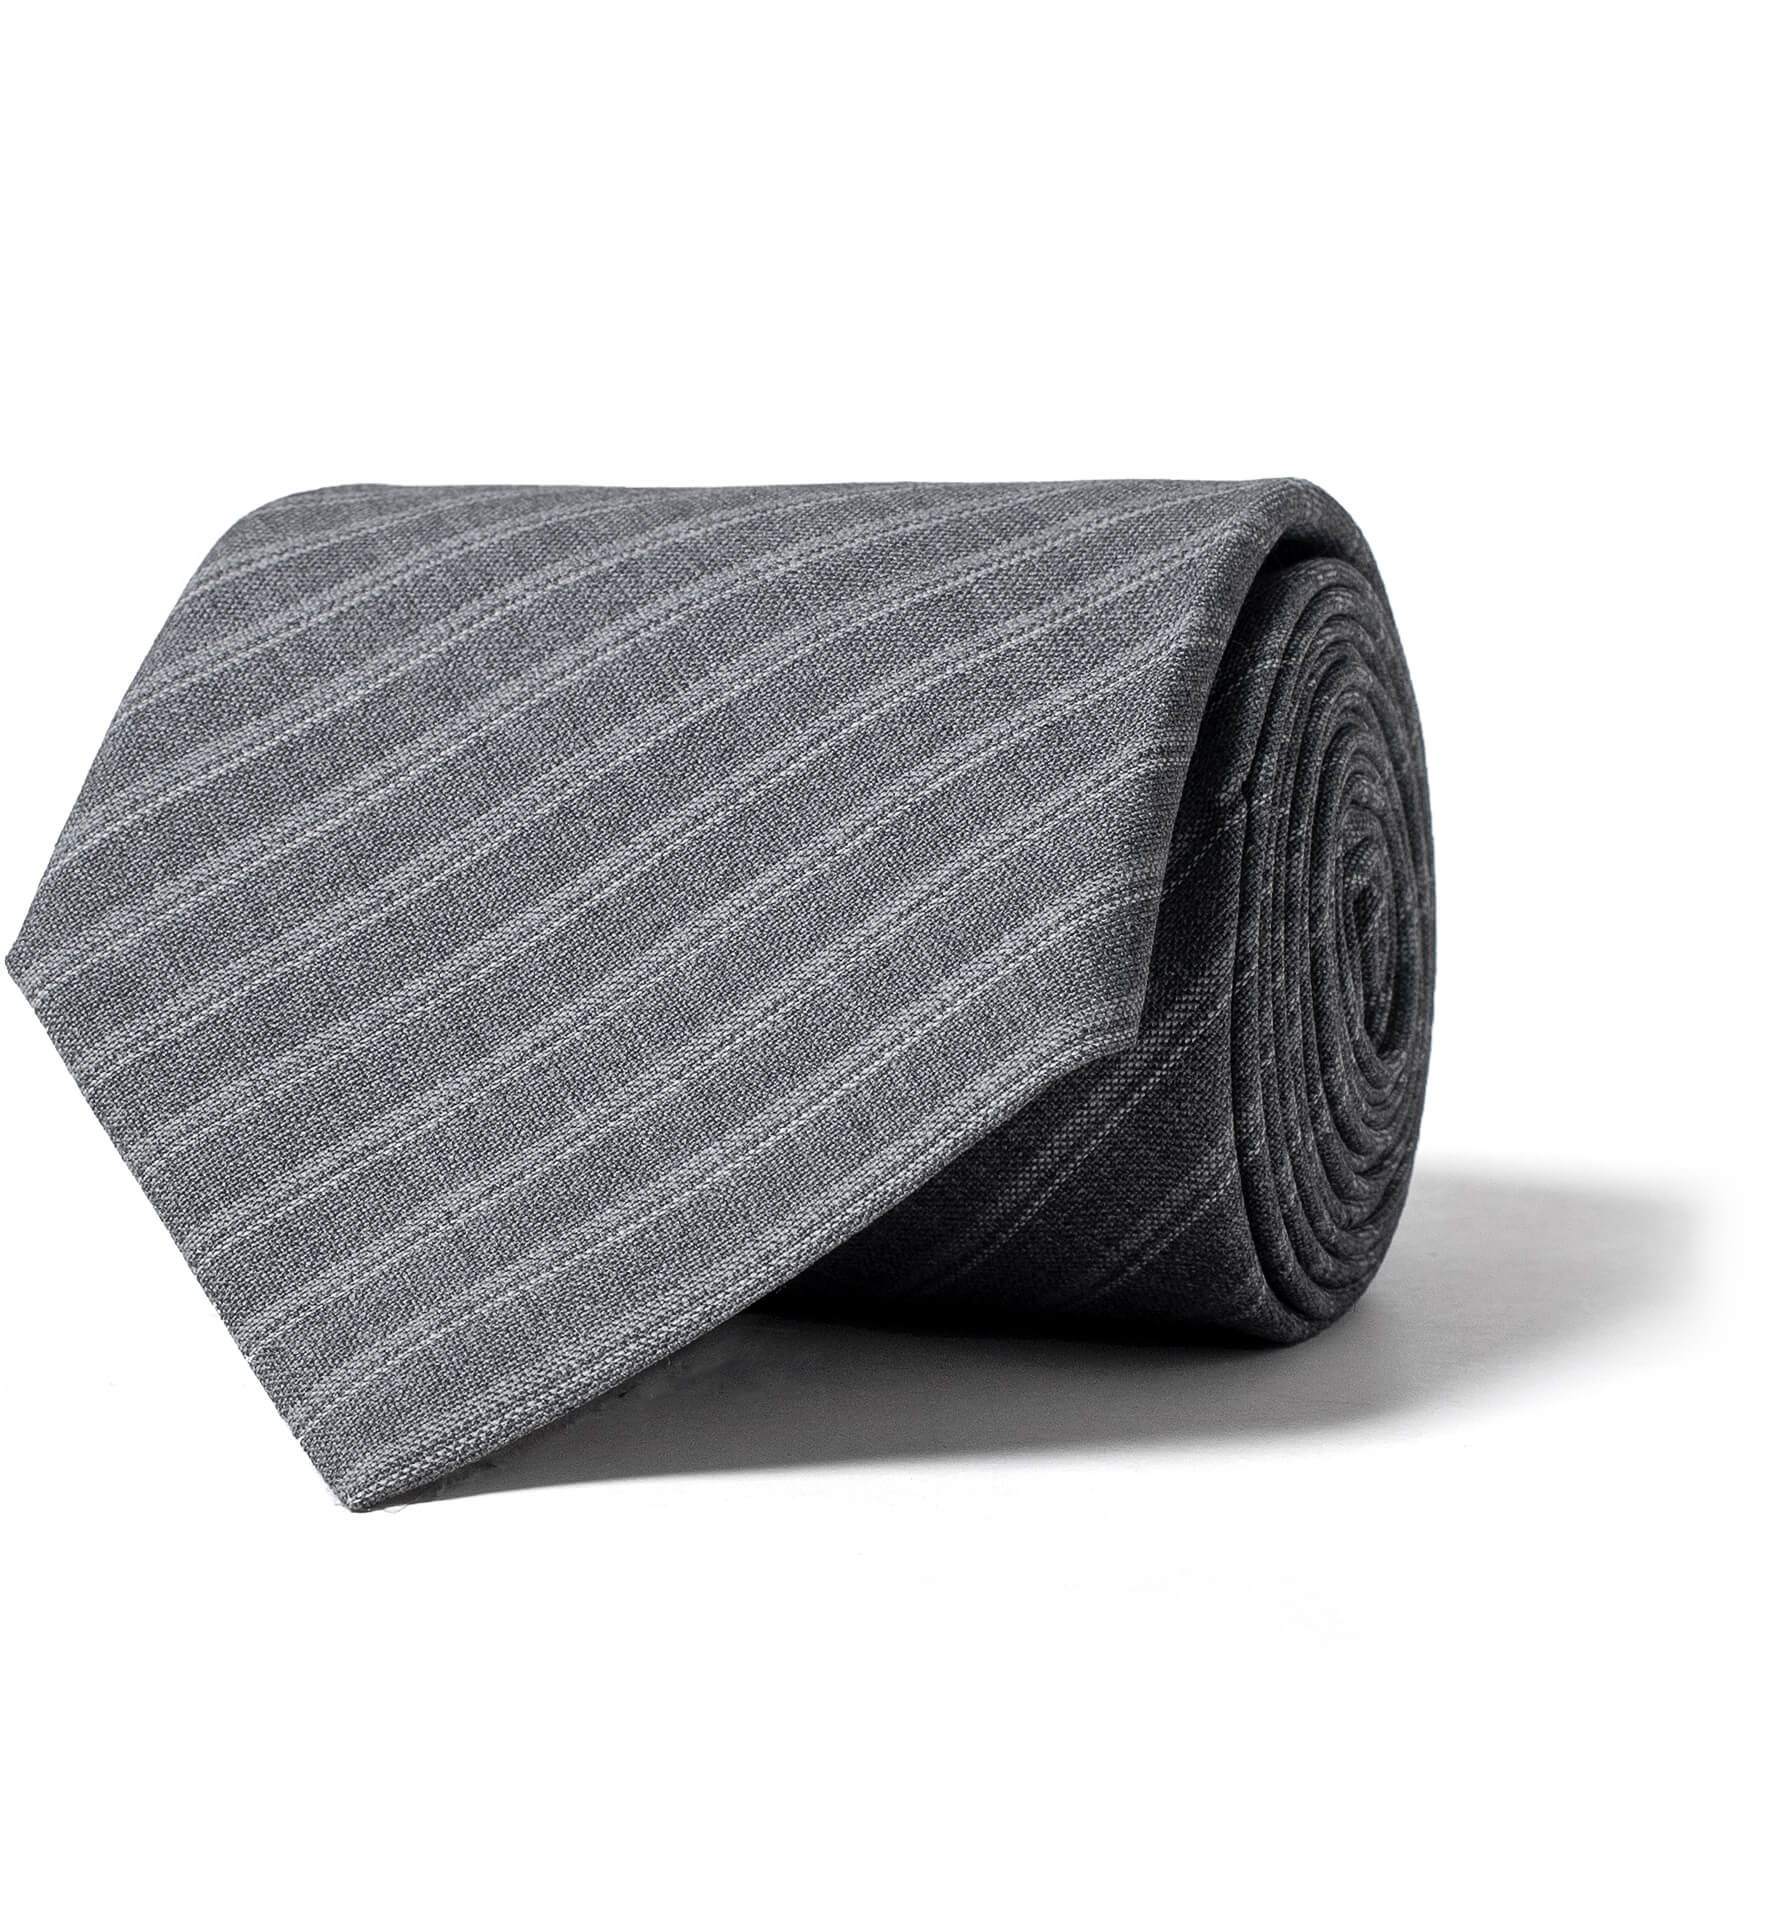 Zoom Image of Grey Striped Tropical Wool Tie